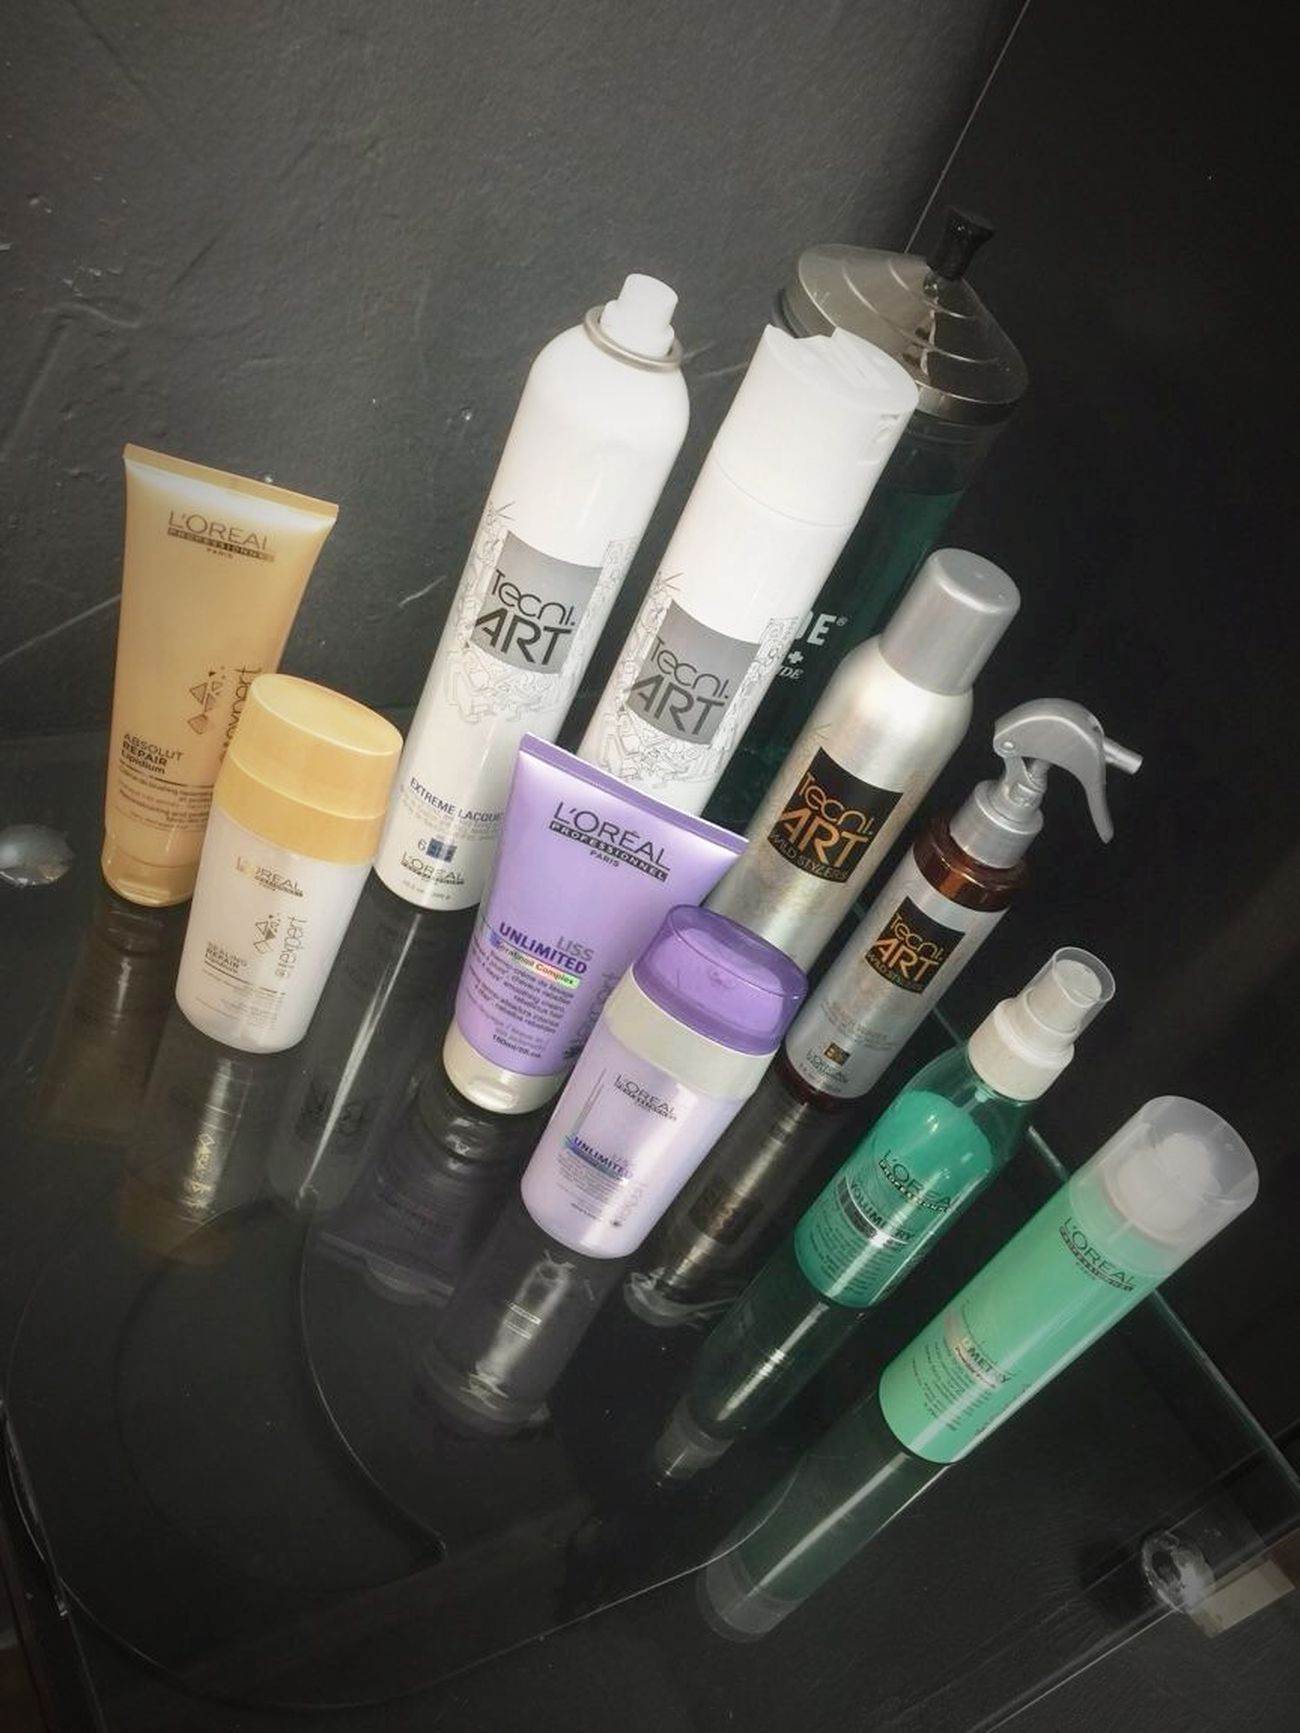 We love our L'Oreal Professionnel & New Styling Line Tecni.Art @znevaehsalon Check This Out Eye4photography # Photooftheday Z Nevaeh Salon L'Oreal Professionnel HairProducts Tecni.art Hairtrends TRENDING  Hair Salonlife